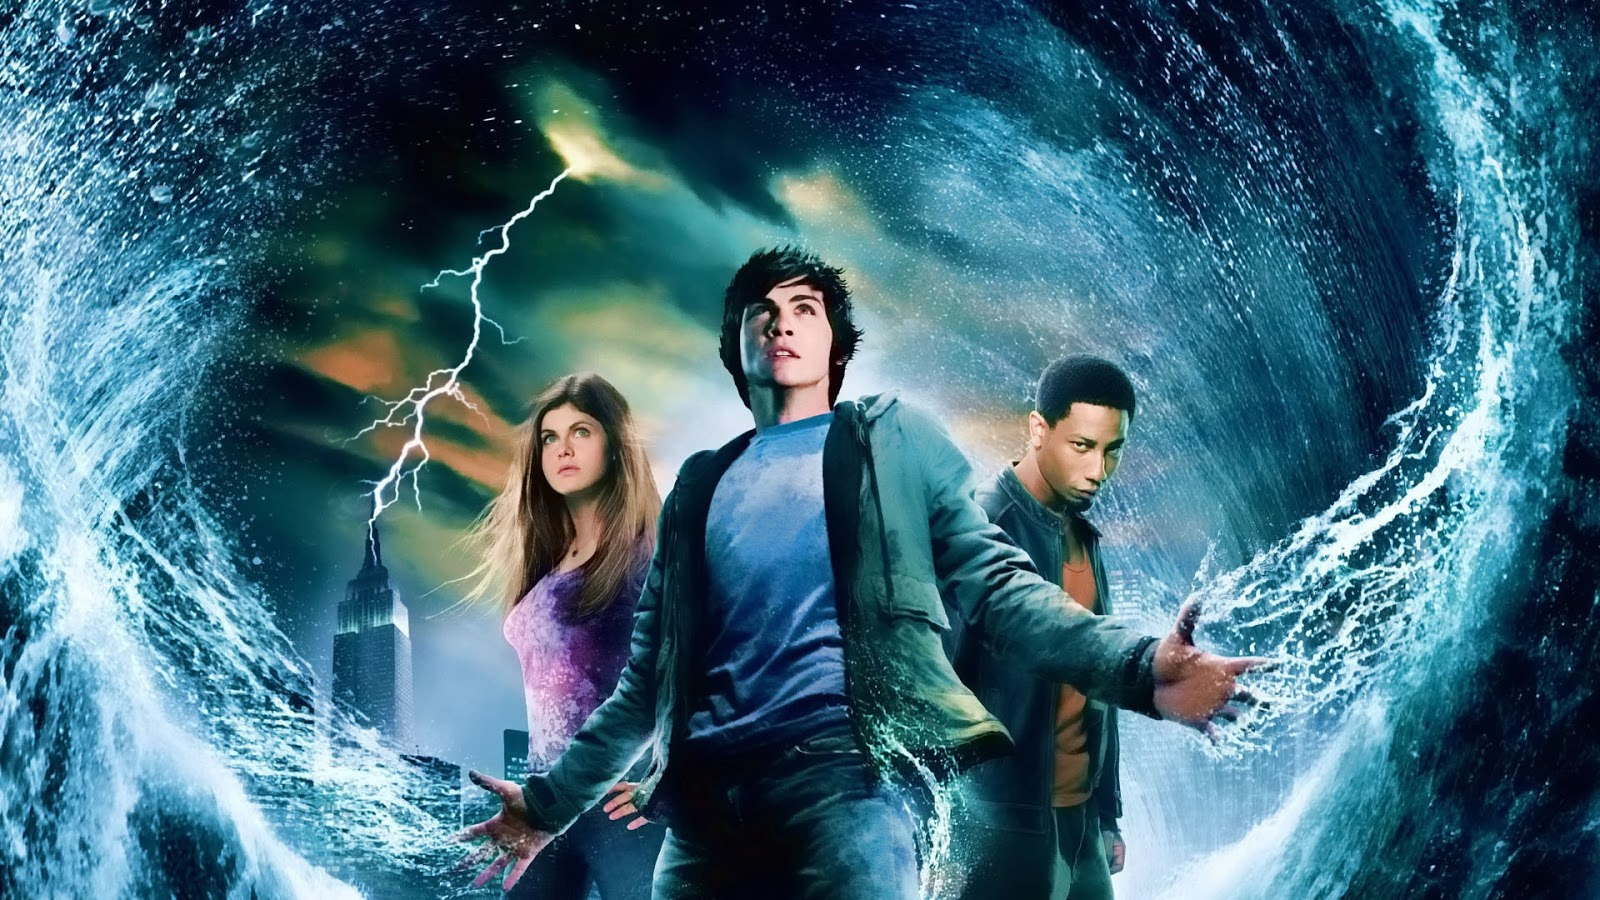 Percy Jackson and the Olympians Movies (2010-2013)